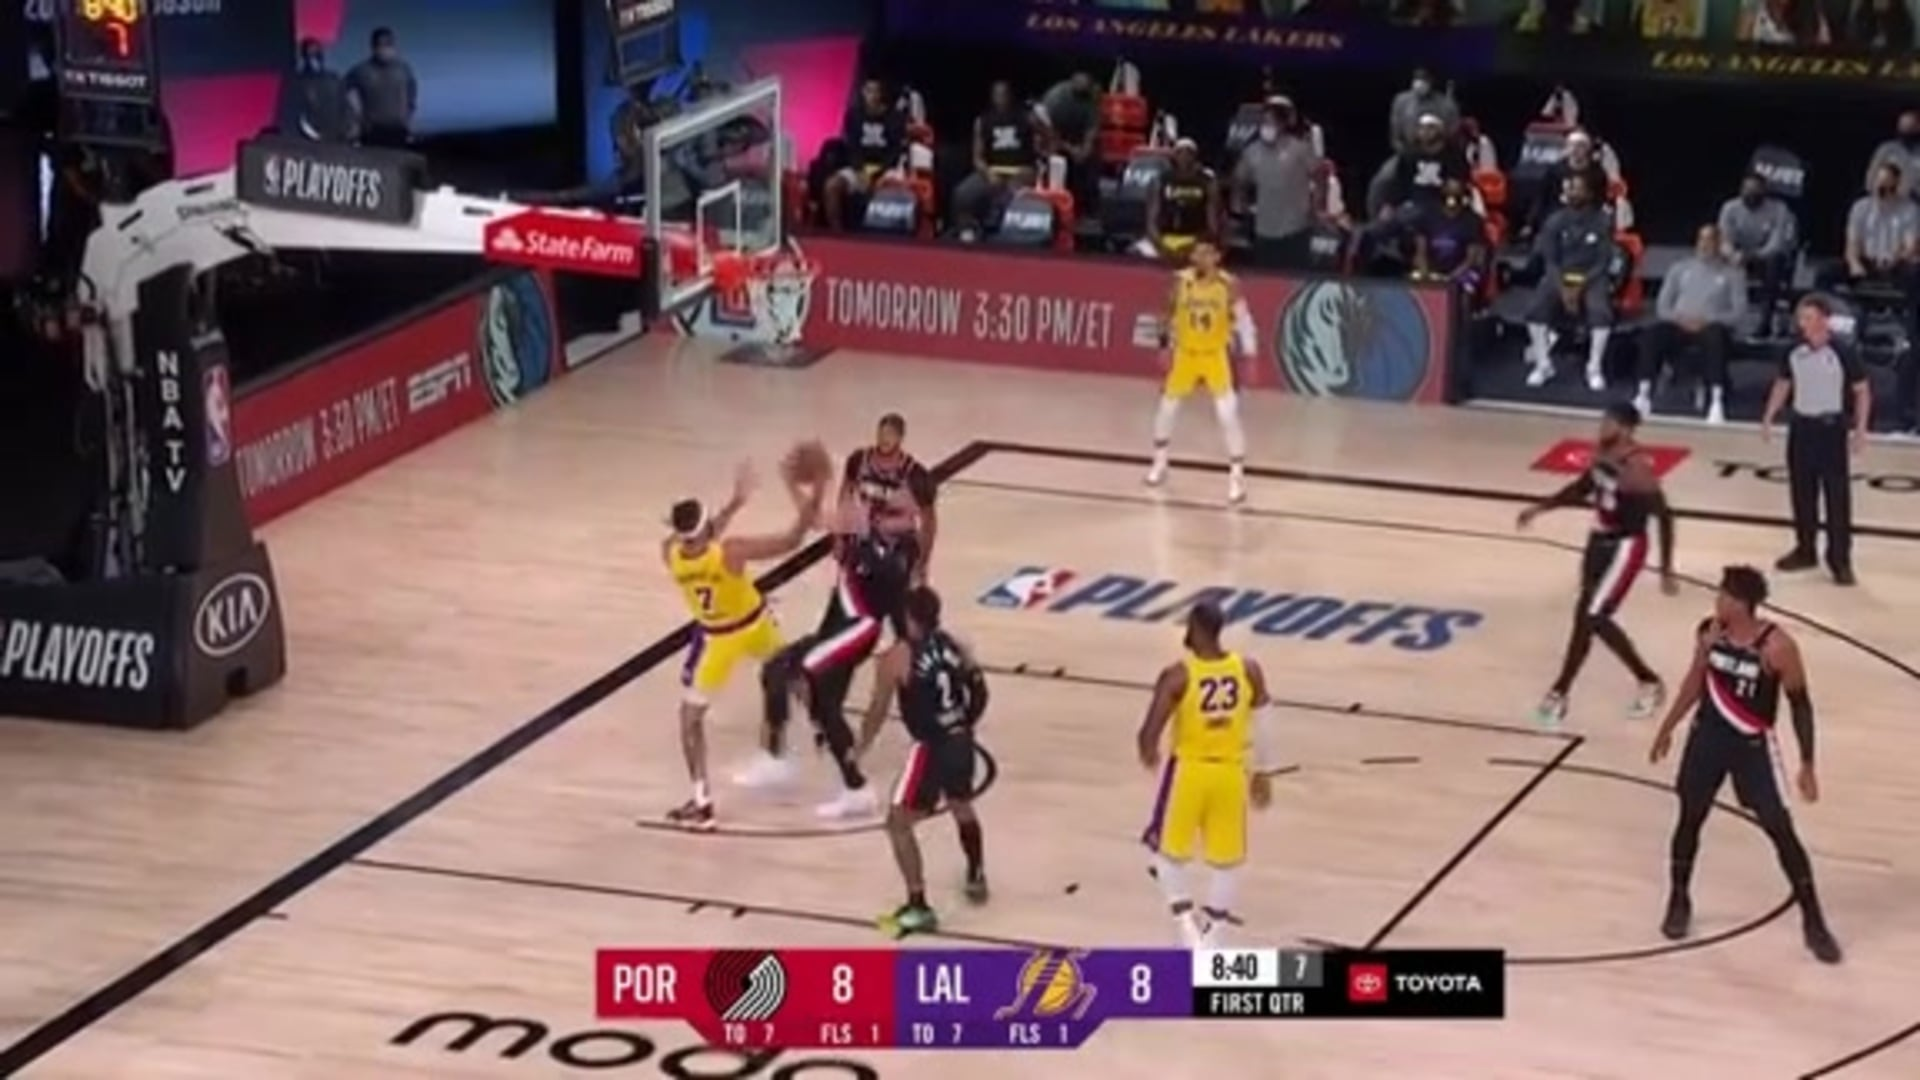 Jusuf Nurkić with the monster block